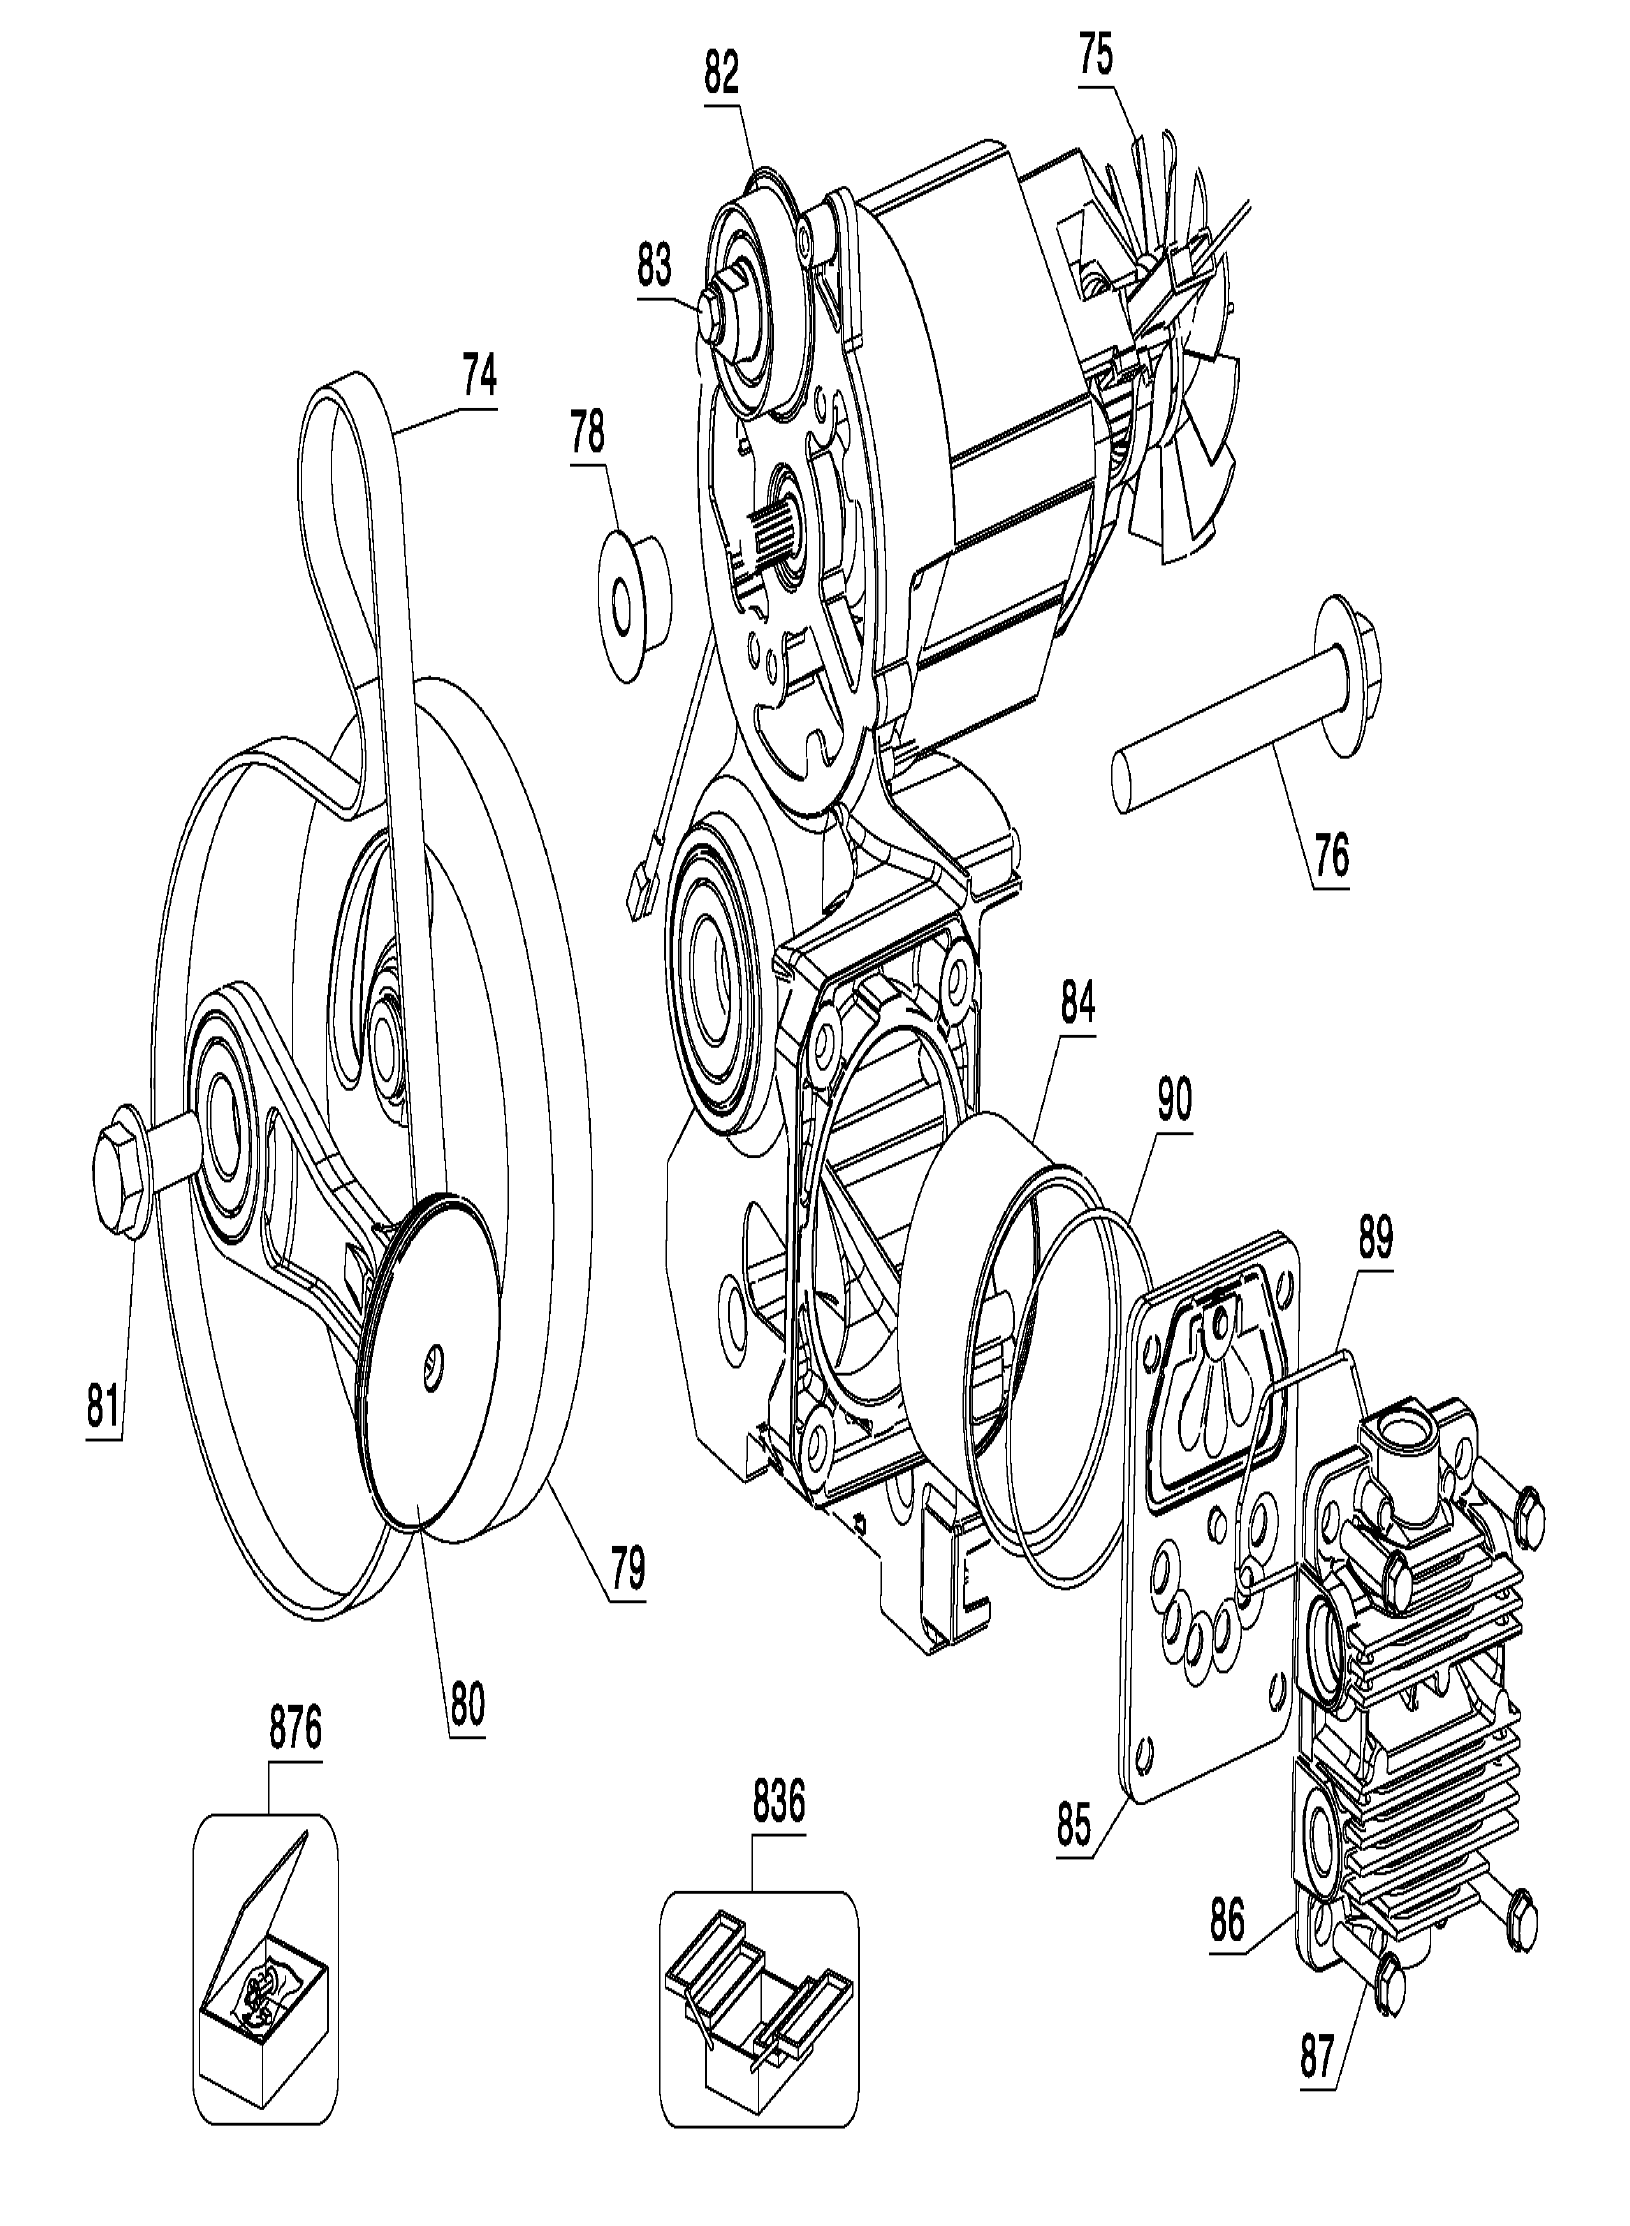 DeWalt D55168 Type-5 Parts Schematic